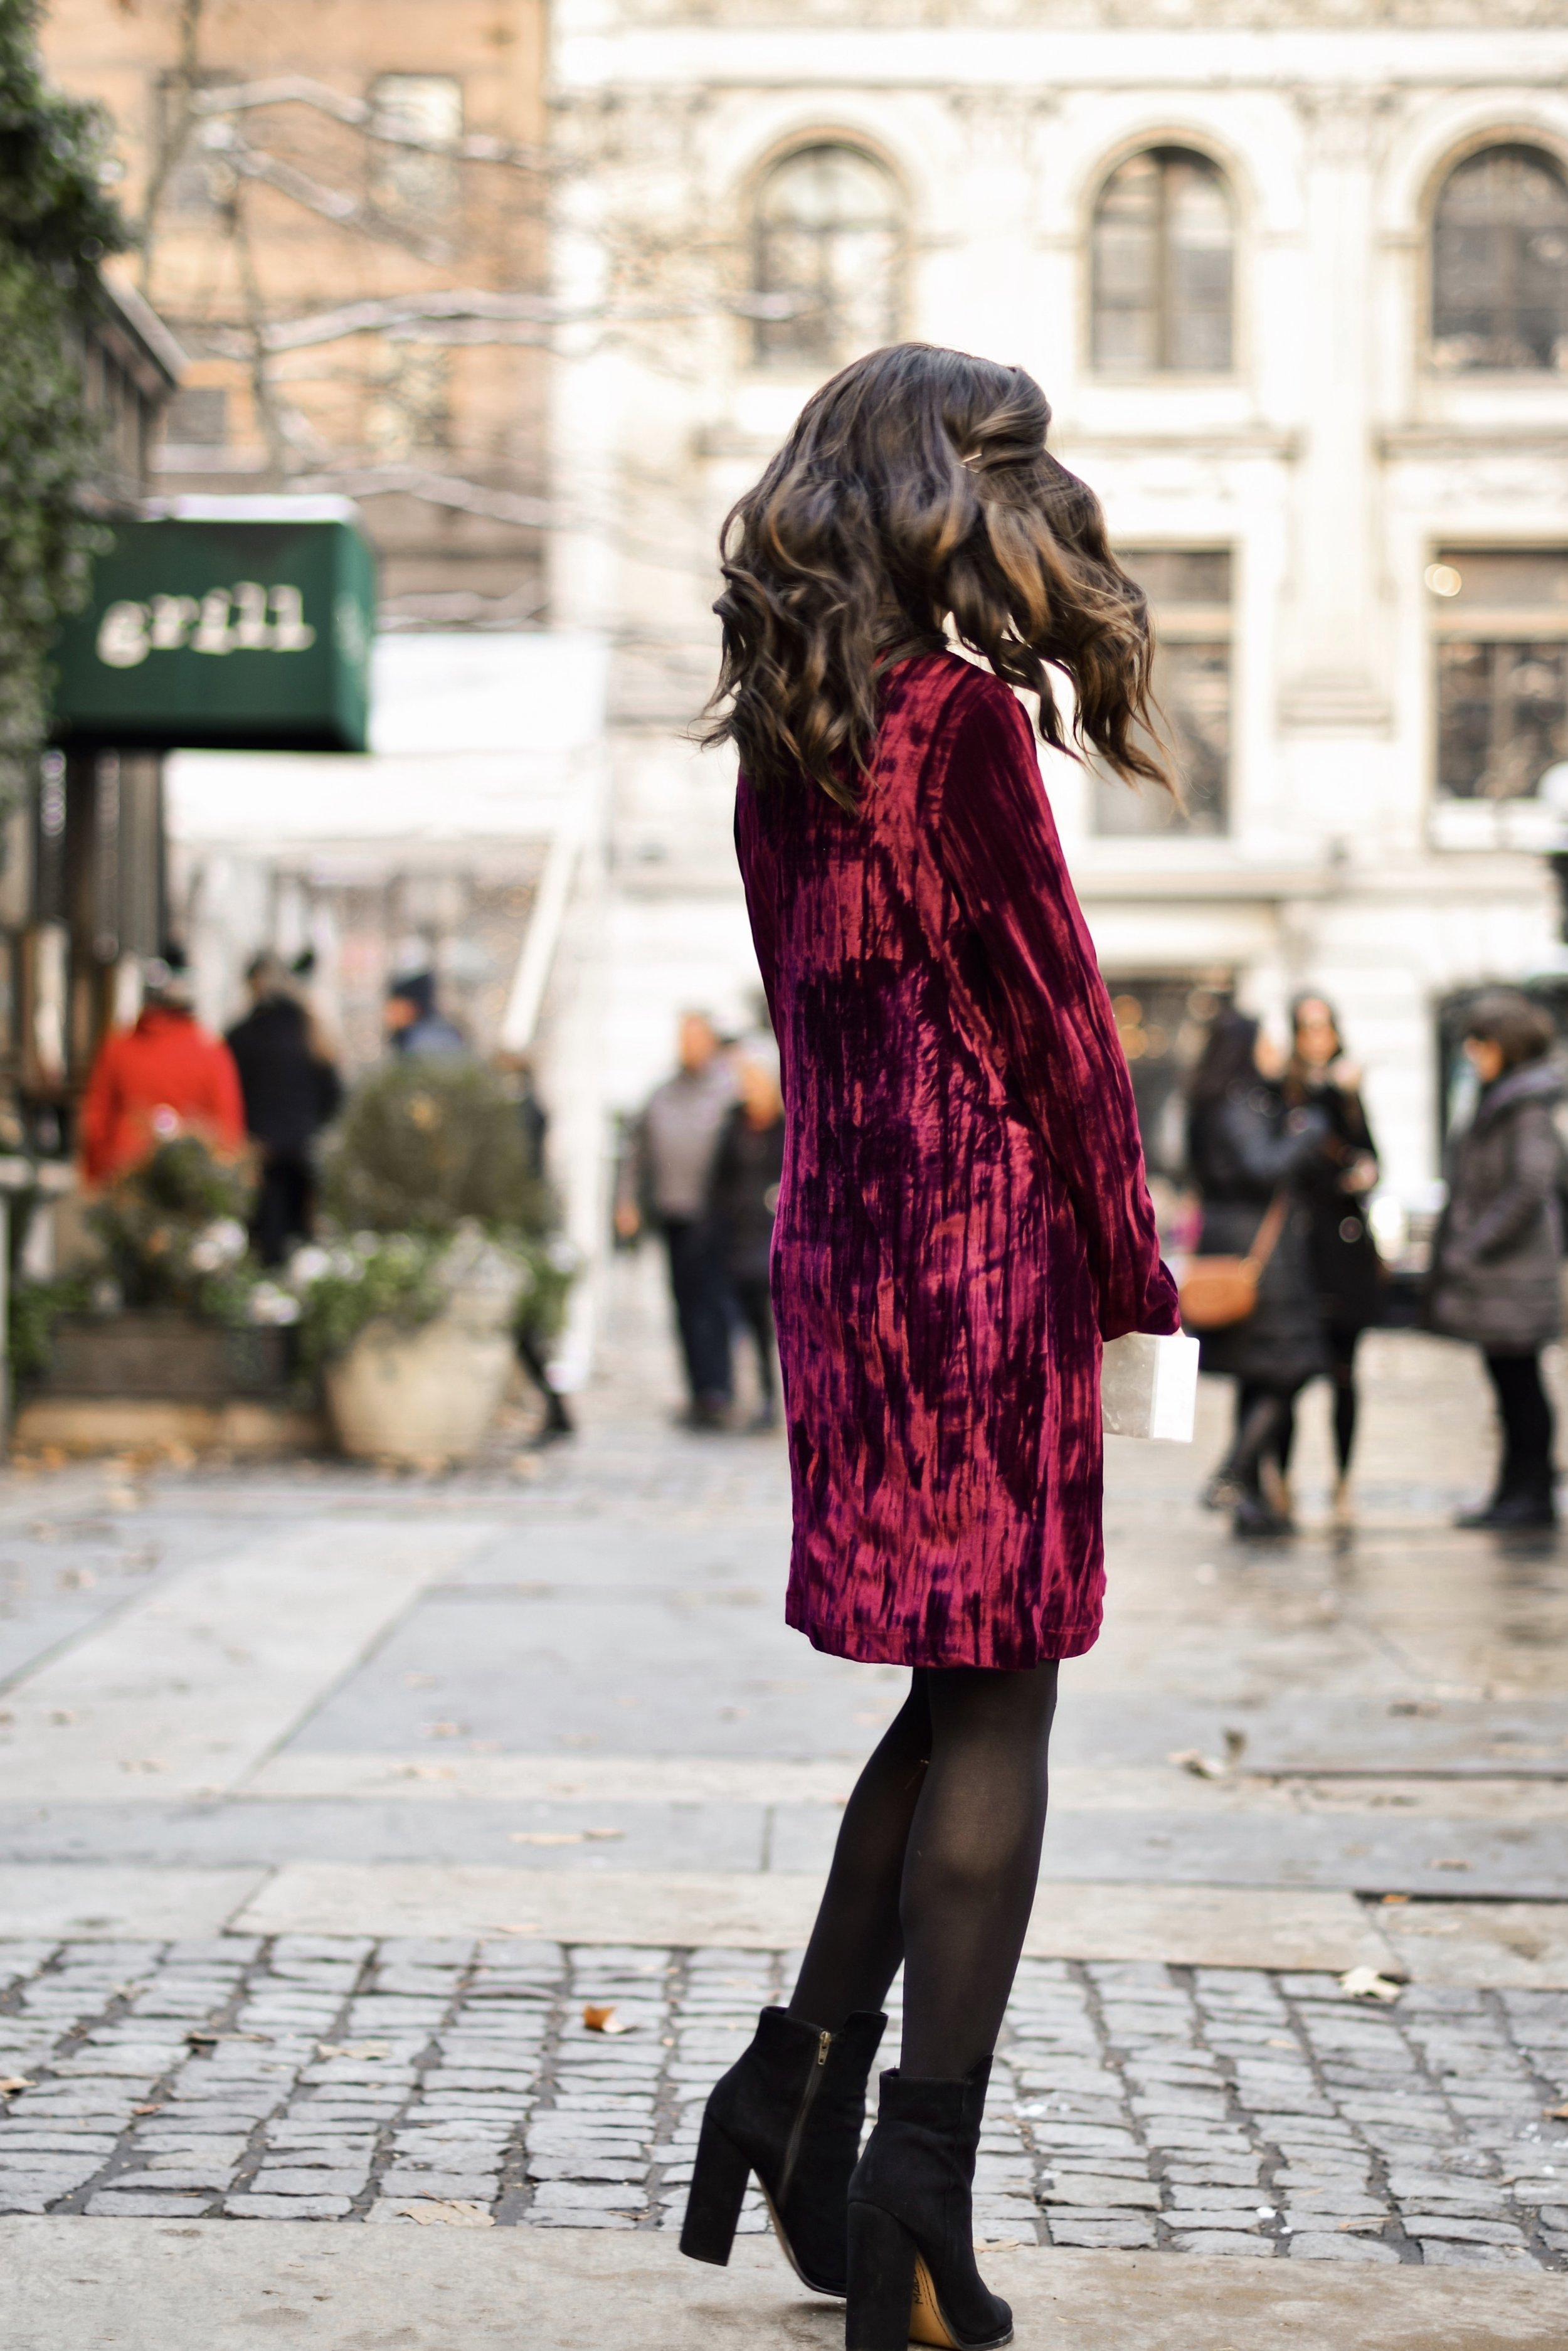 17 Tips On Building An Instagram Following Maroon Velvet Dress Black Booties Esther Santer Fashion Blog NYC Street Style Blogger Outfit OOTD Trendy Zara Online Shopping Winter Monogram Box Bag Clutch M4D3 Shoes Wavy Hair Hue Tights Wear Simple Classic.jpg